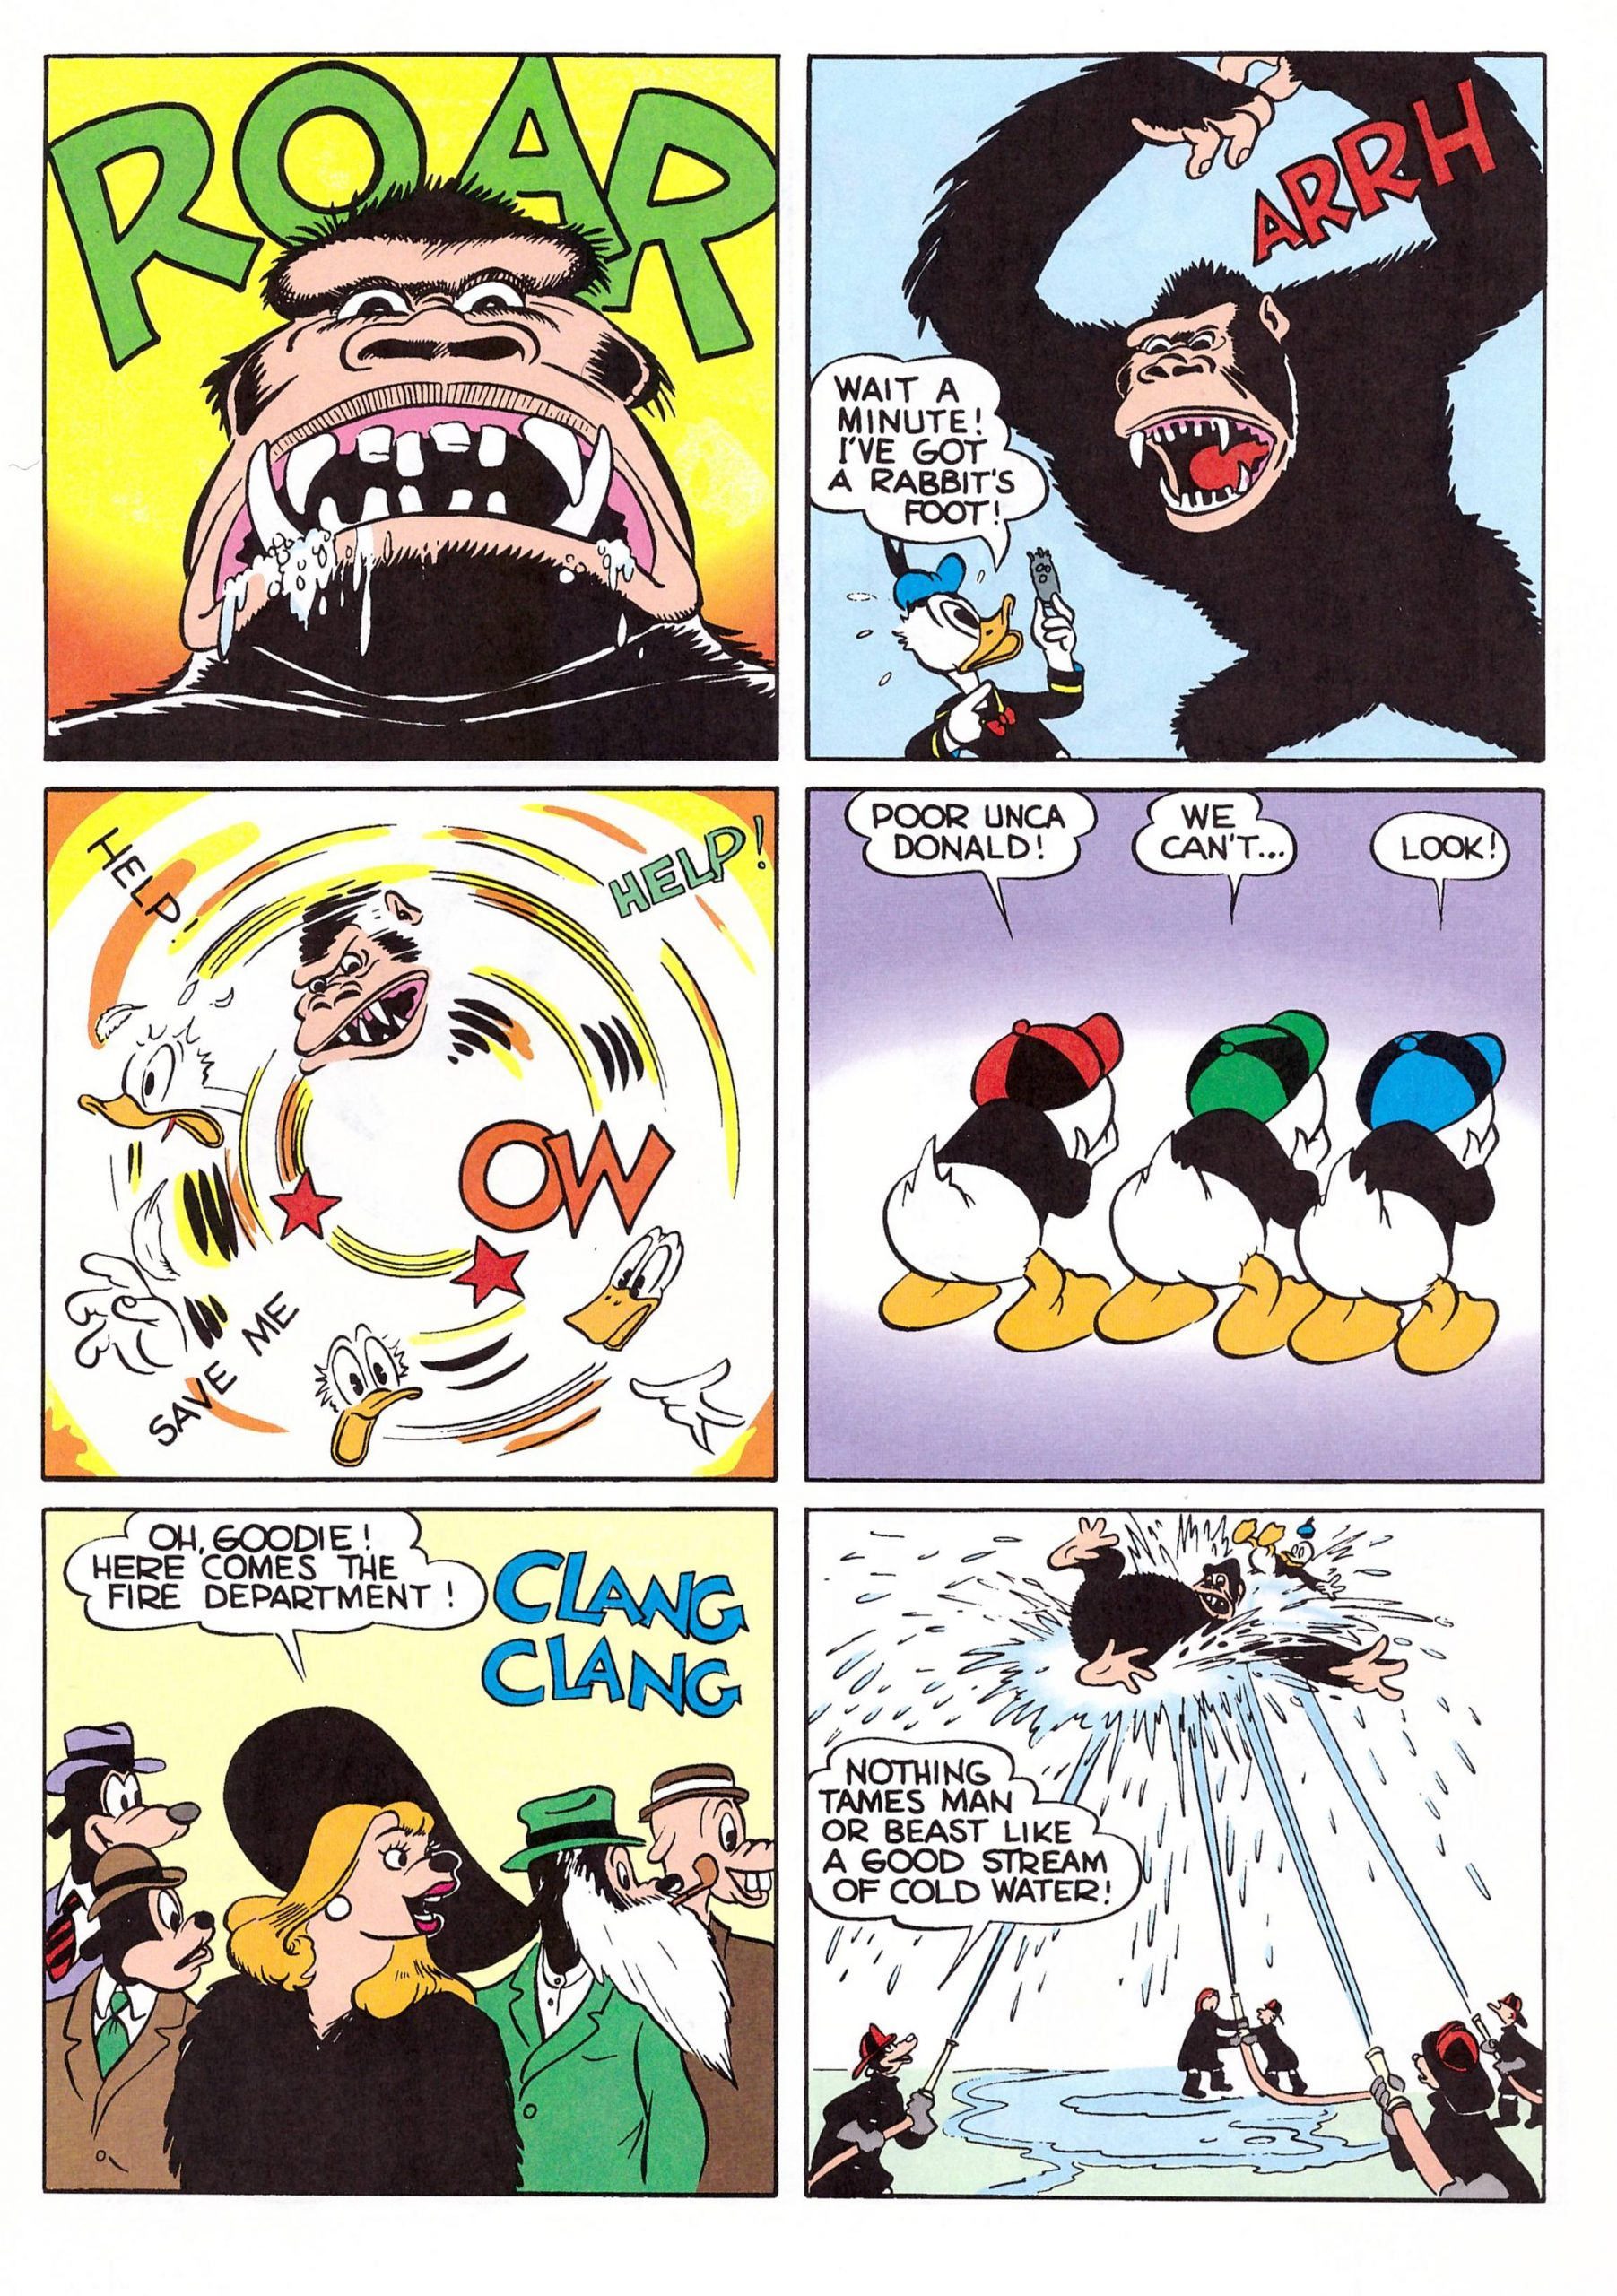 Walt Disney Comics & Stories by Carl Barks 1 review